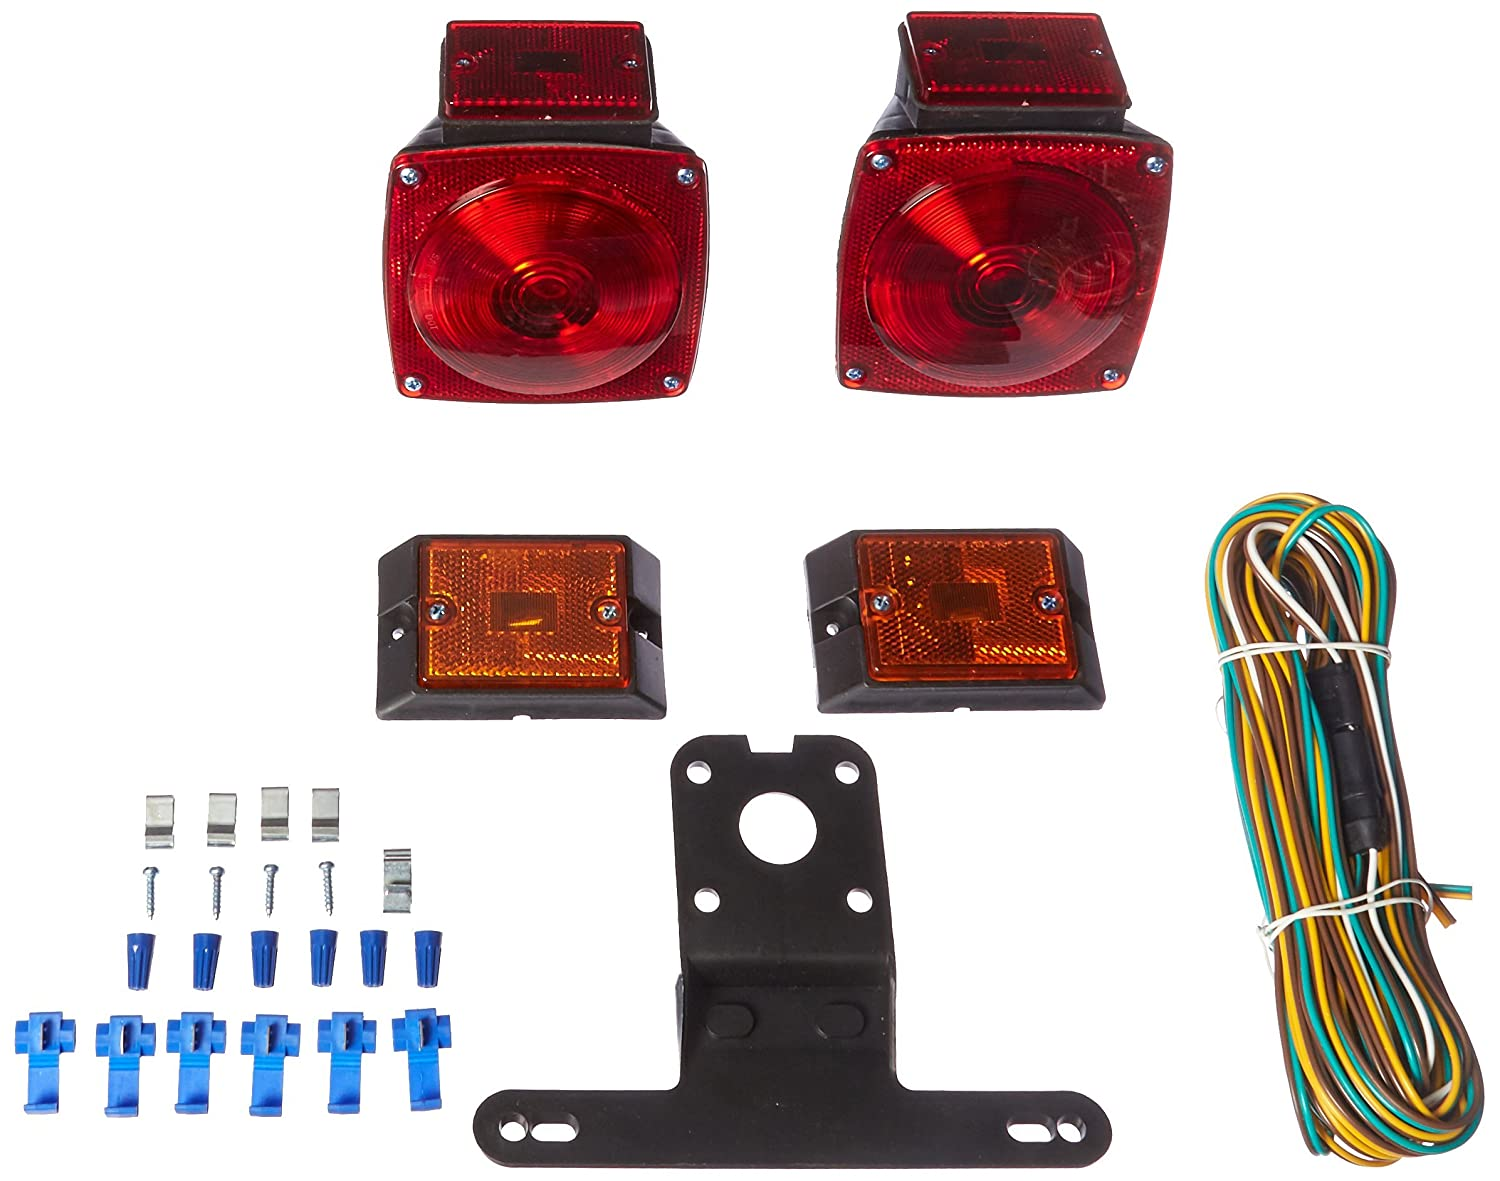 Maxxhaul 70094 12v Light Kit For Trailers Under 80 Stop Lights 4 Wire Wiring Harness Automotive